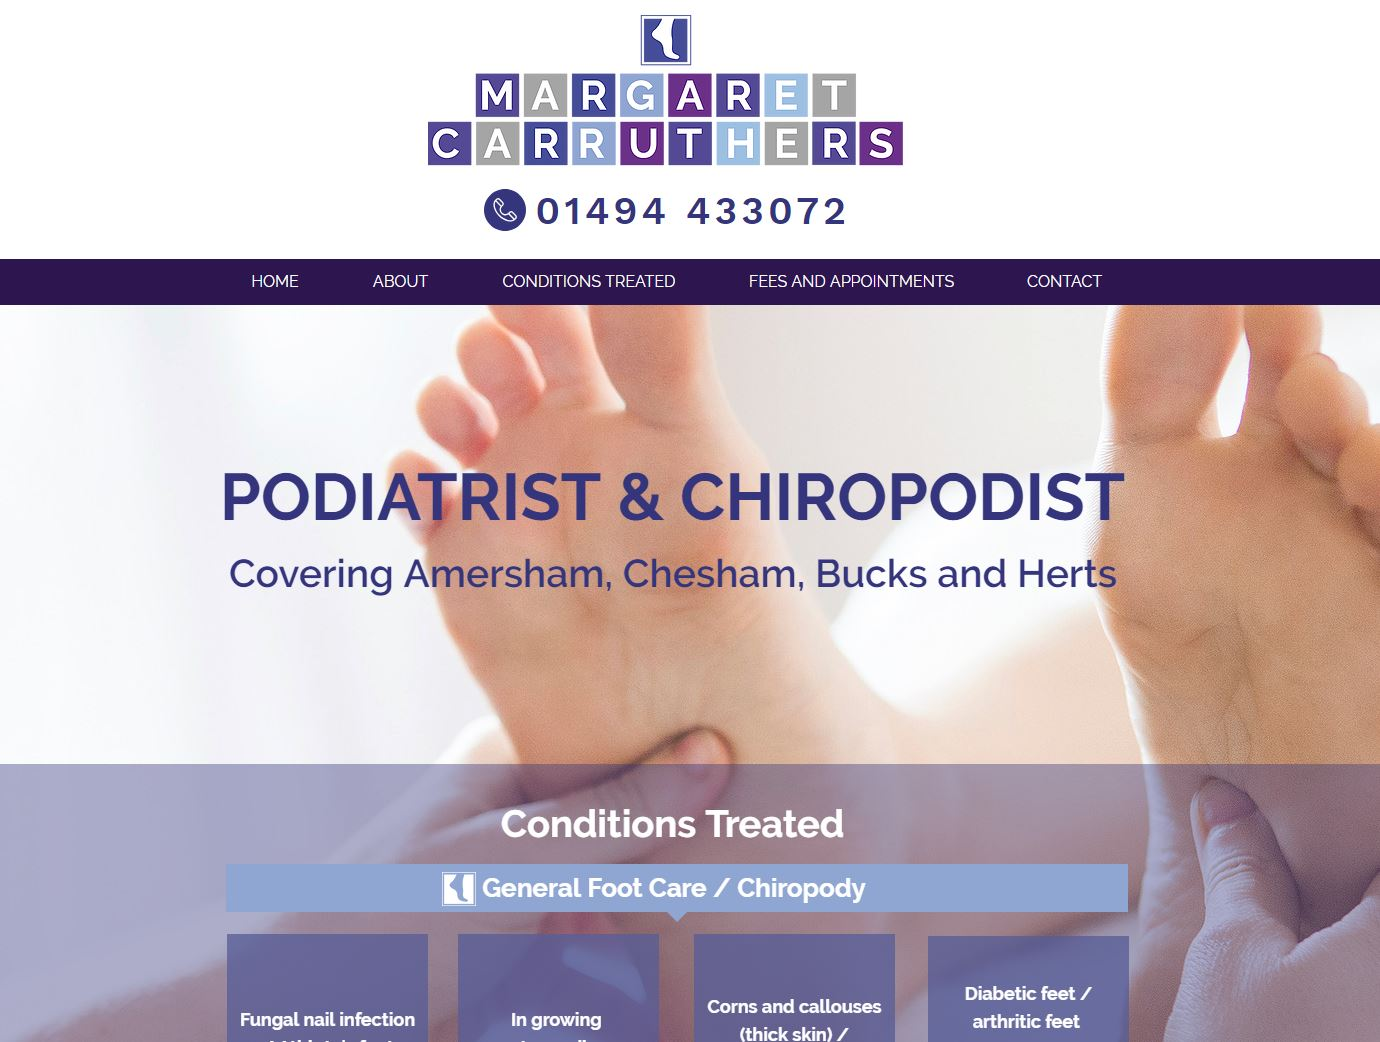 Margaret Carruthers Podiatrist